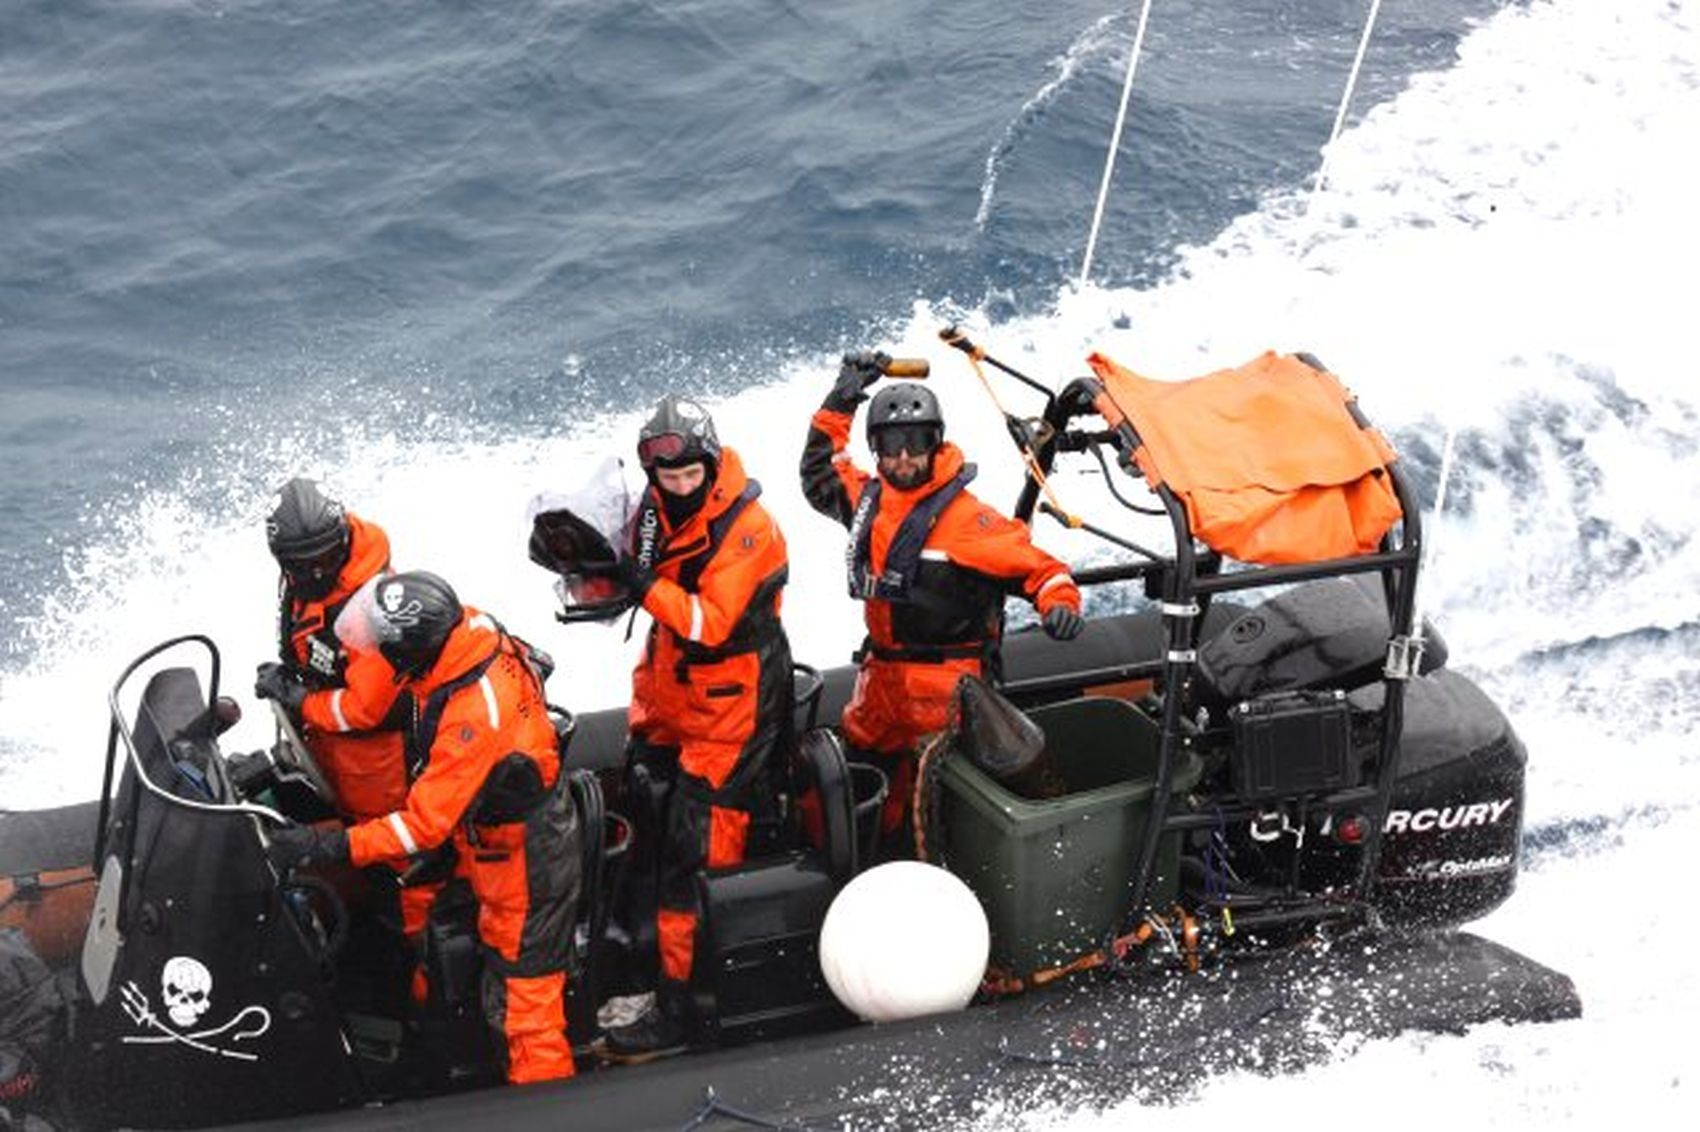 Whaling is Barbaric? Criticisms of Japan Are Without Scientific Basis